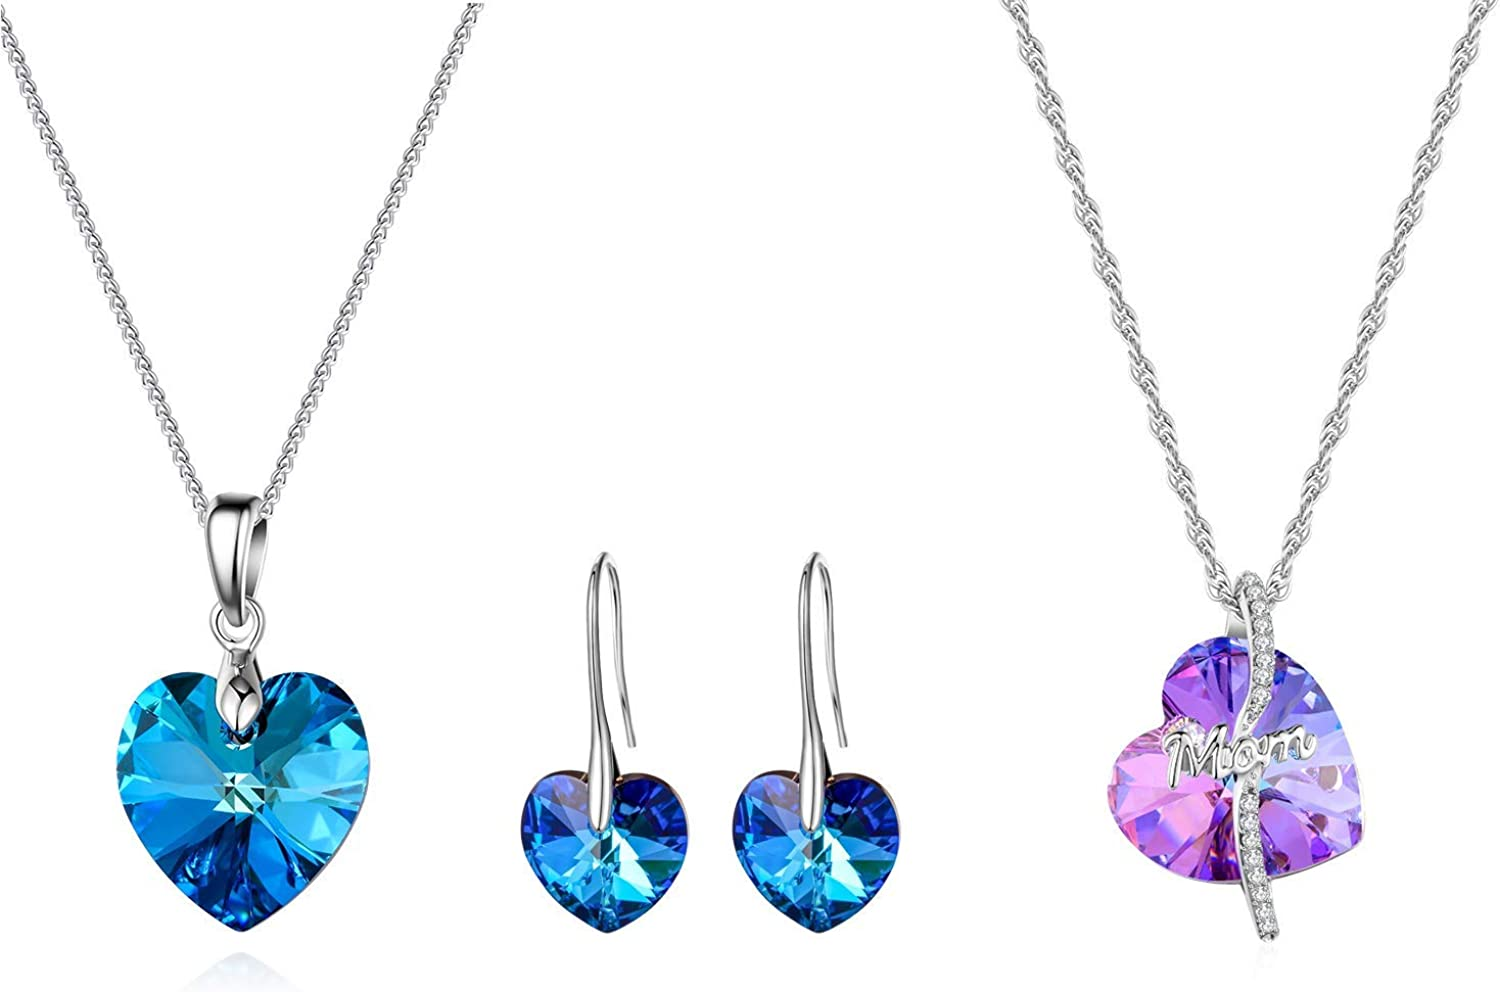 MOOCHI Swaroski Crystal Element Blue Heart Necklace Earrings Set and Purple Heart Necklace